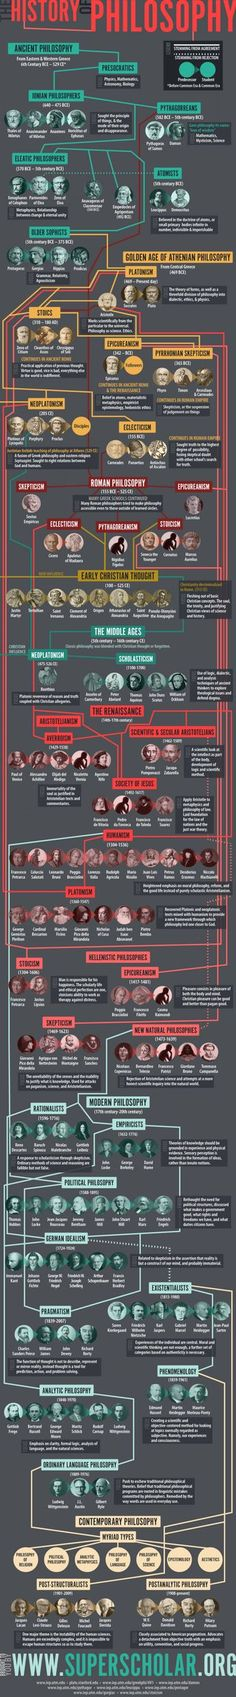 History of Philosophy Infographic